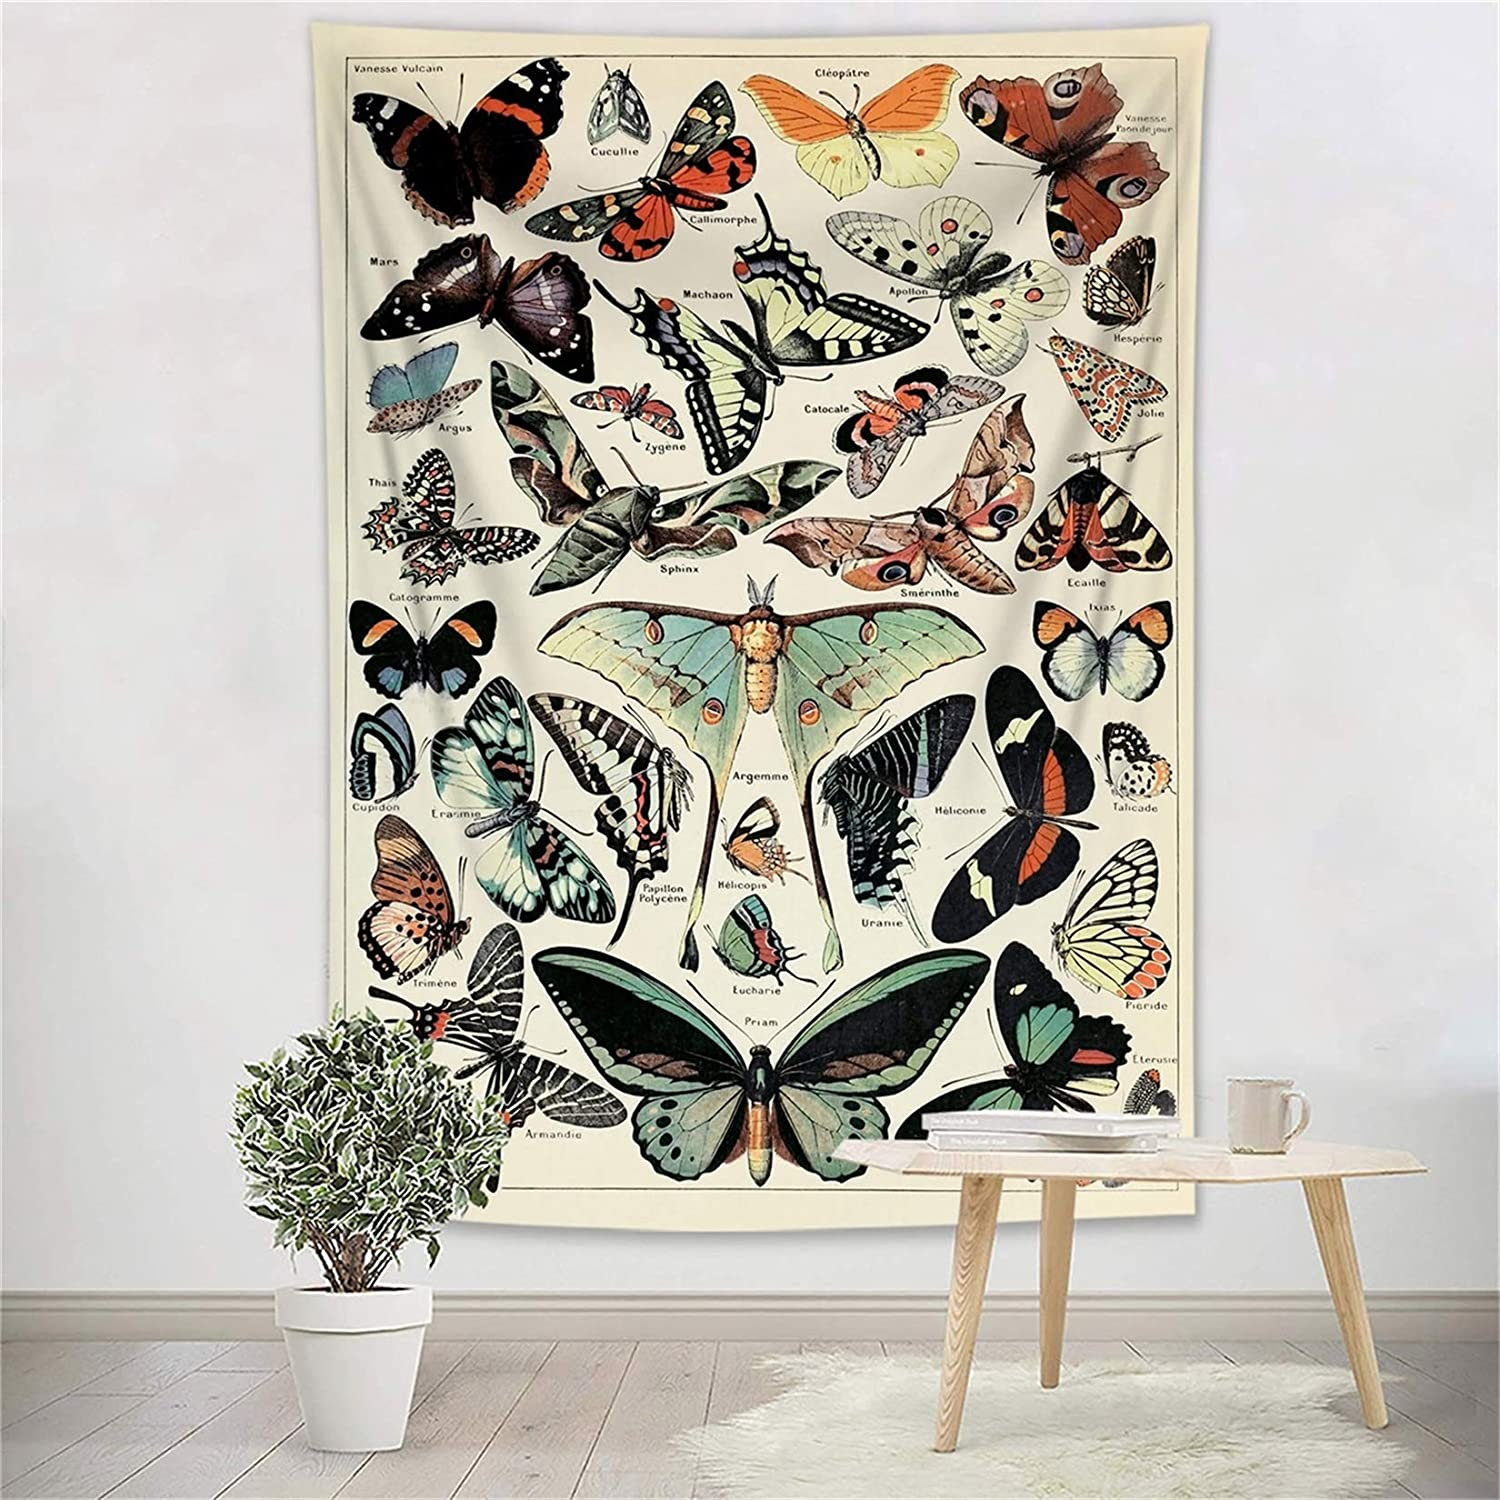 ECOTOB Retro Butterfly Tapestry Colorful Various Butterflies Vintage Beige Tapestry Wall Hanging Blanket Rustic Farmhouse Insect Tapestries for Bedroom Living Room College Dorm Decor, 40Wx60H inch